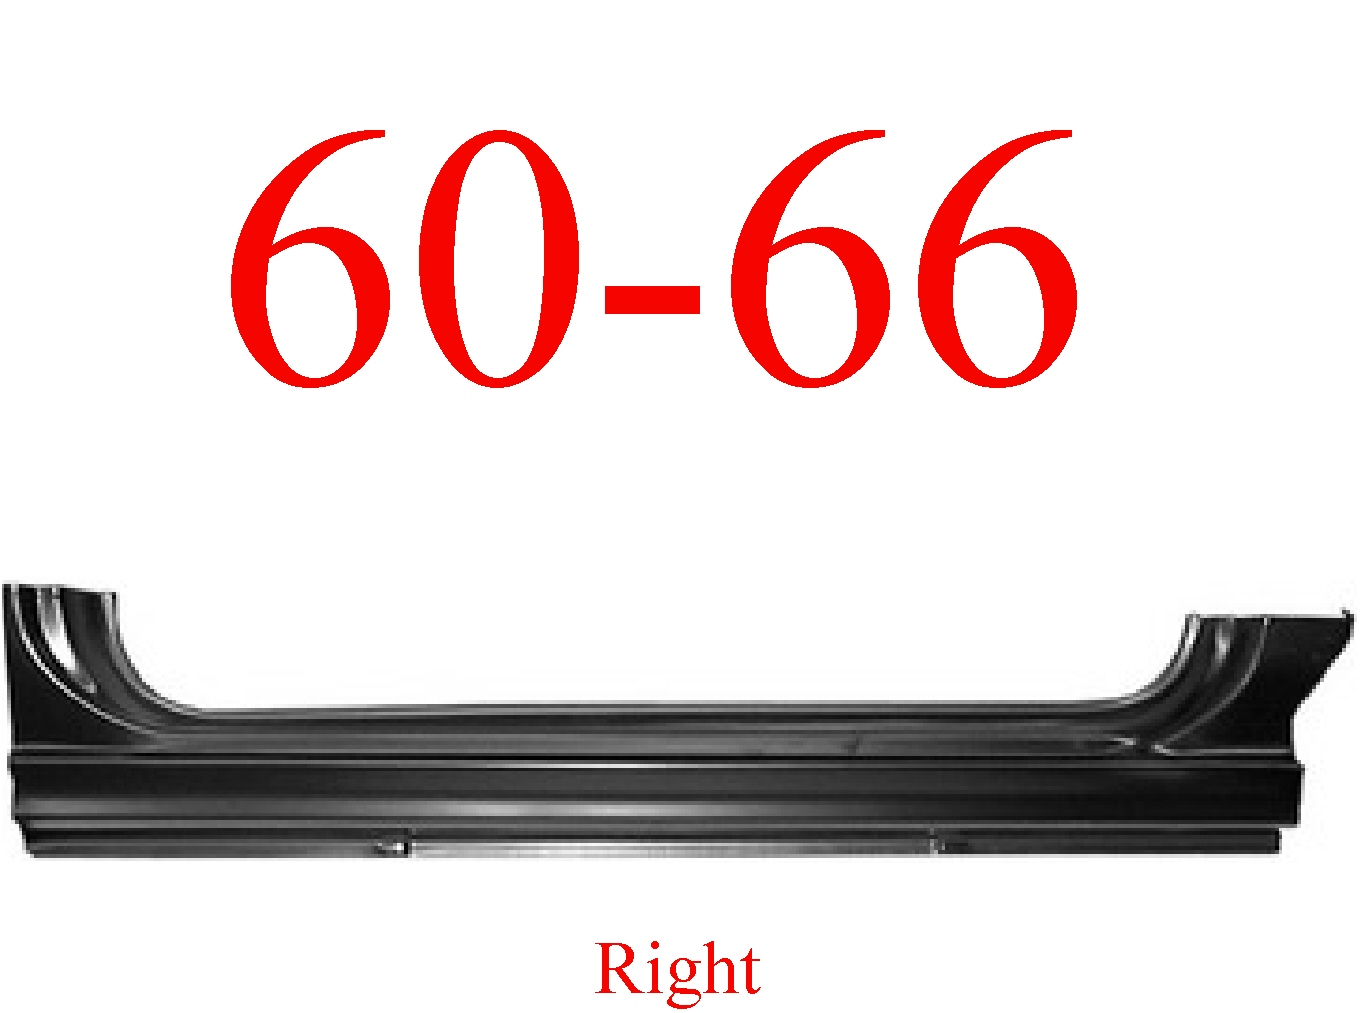 60-66 Chevy Right Extended Rocker Panel, OEM Type